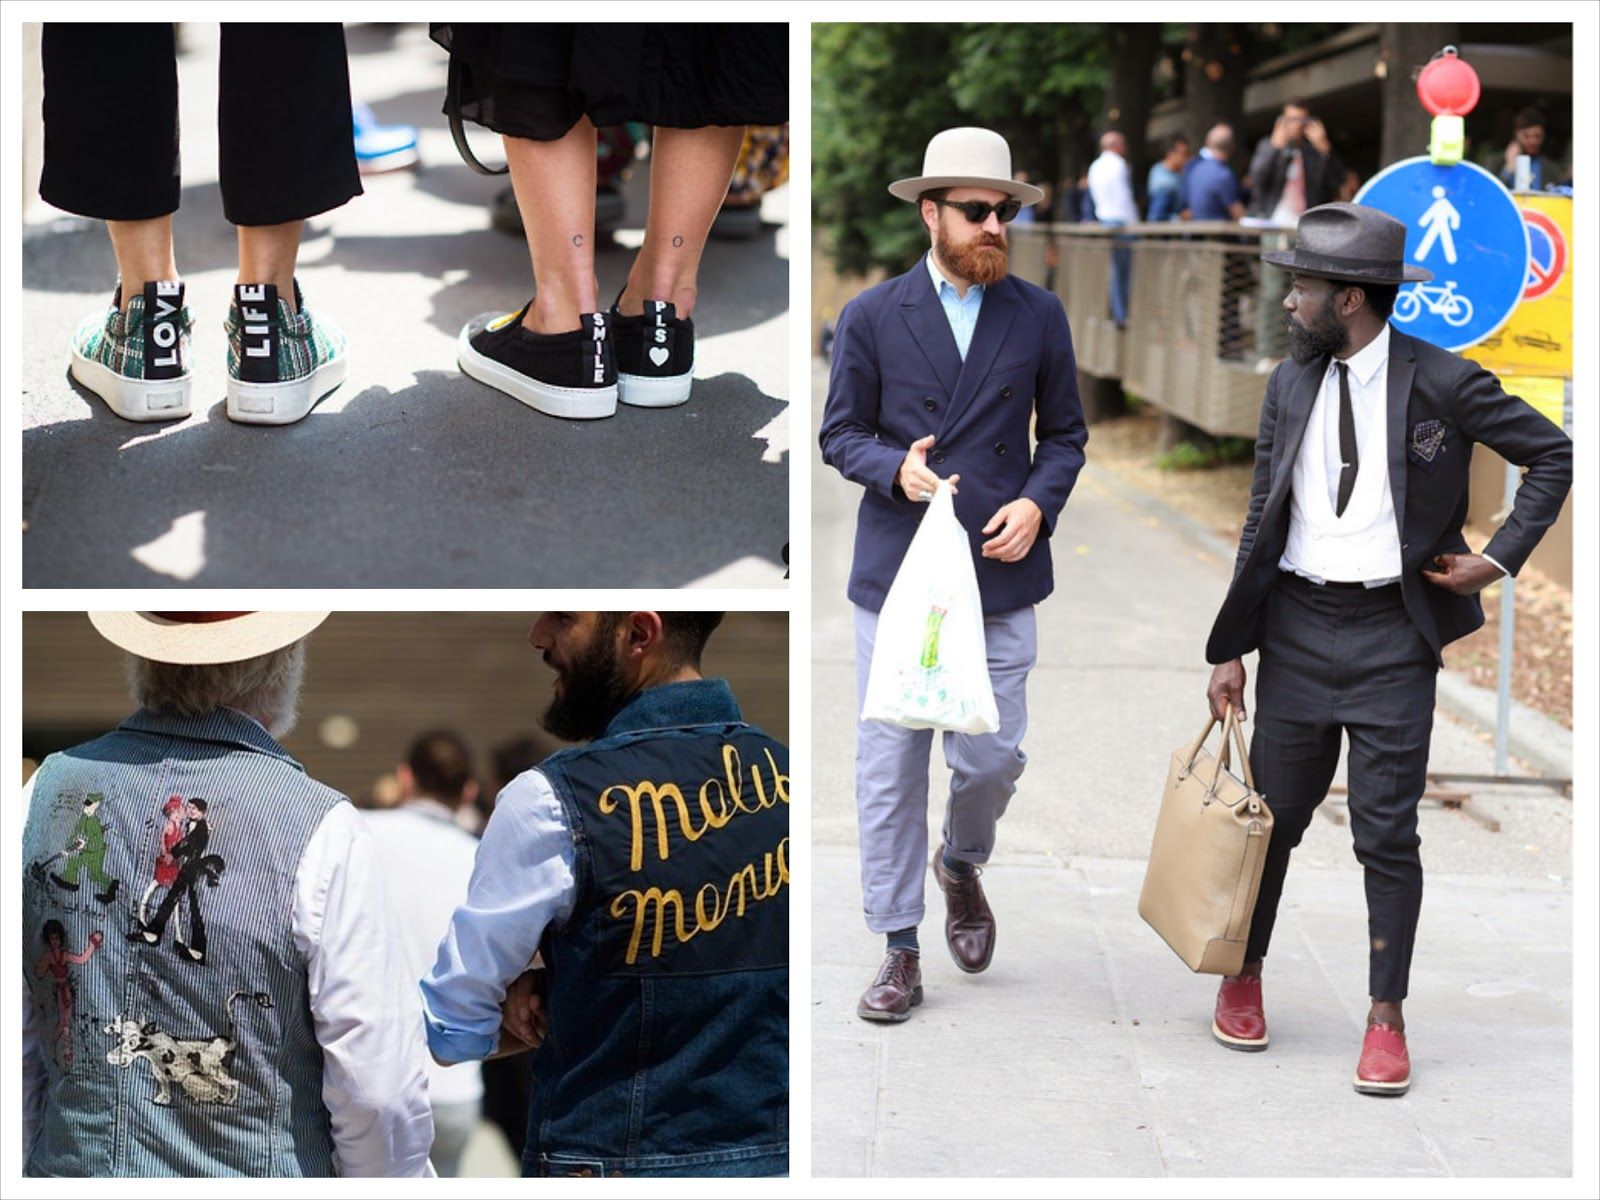 God Save the Queen and all: Street Style: Pitti Uomo rebosa estilo #streetstyle #pittiuomo